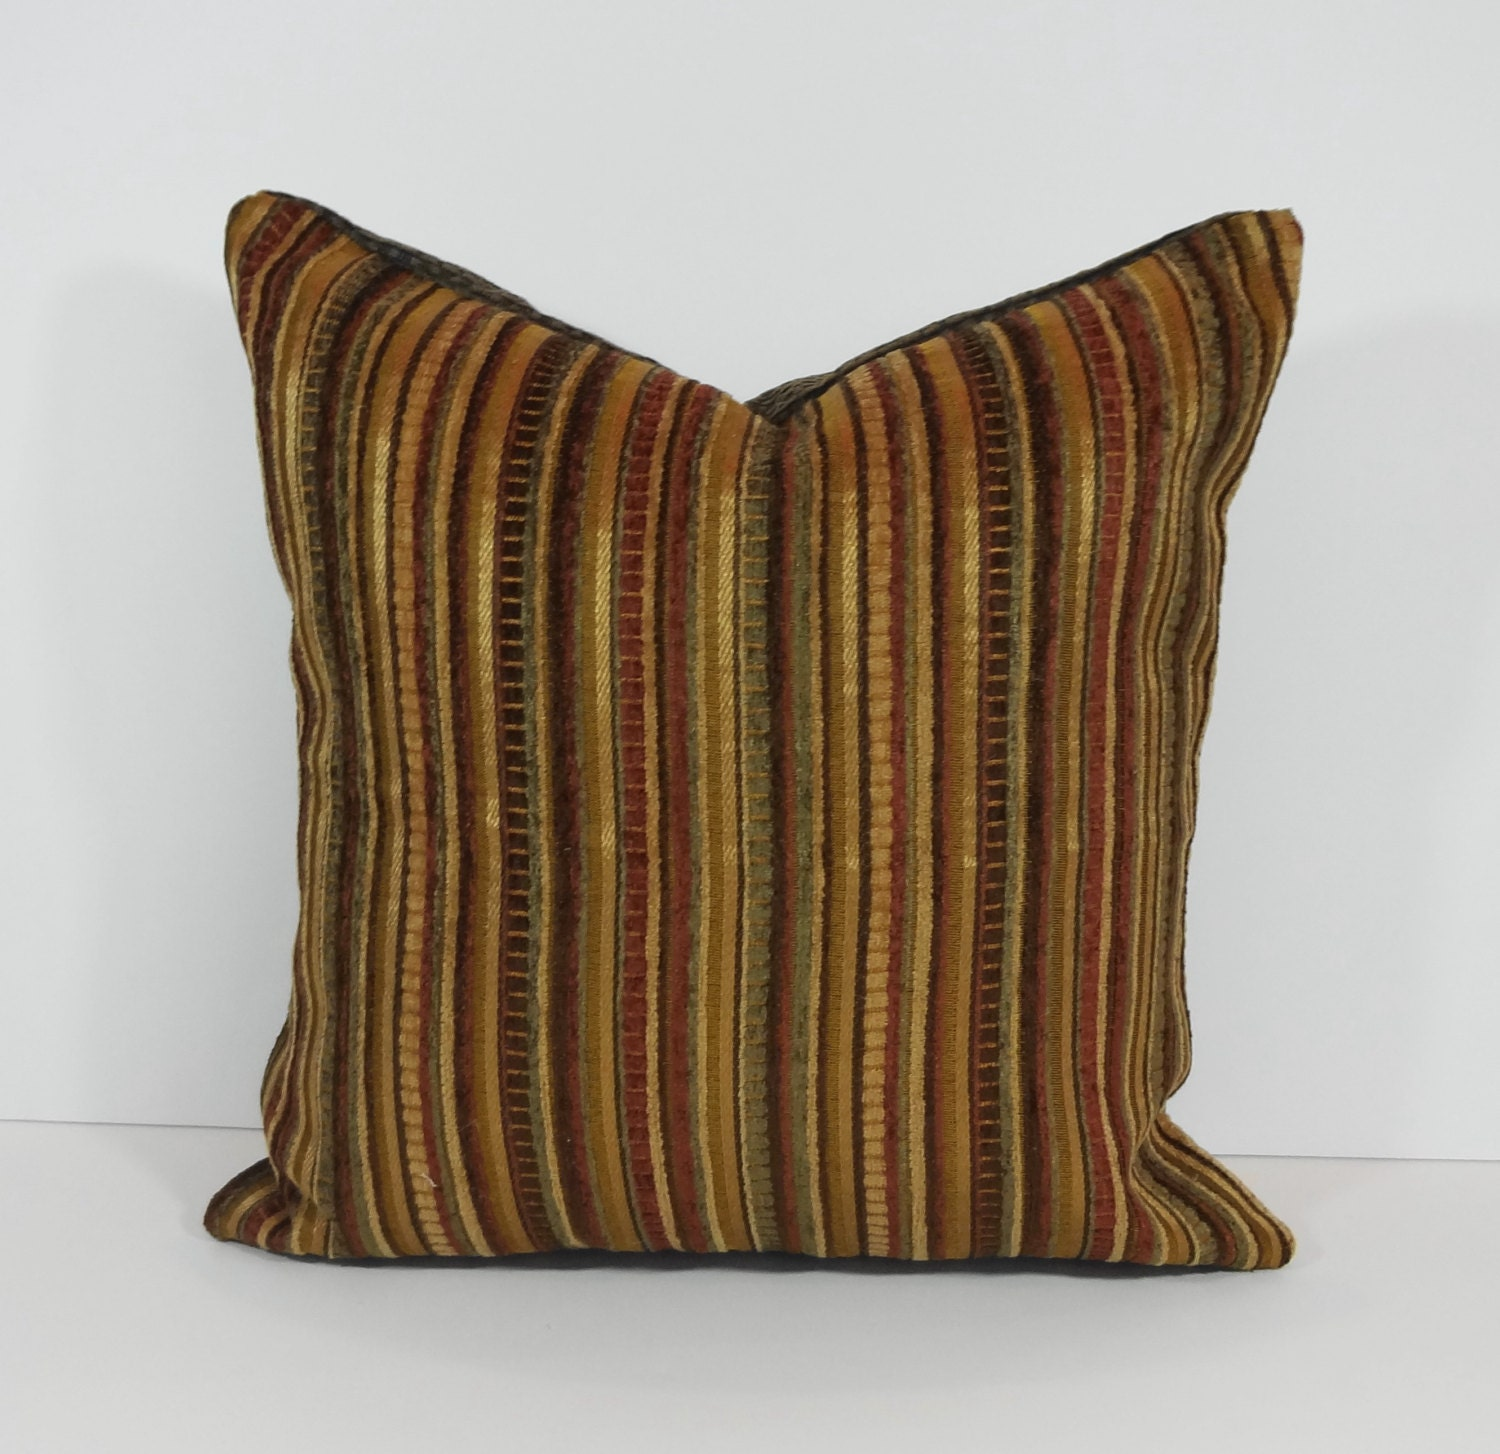 Chenille Throw Pillow Covers : Decorative Chenille Pillow Cover Throw Pillow Cushion Gold